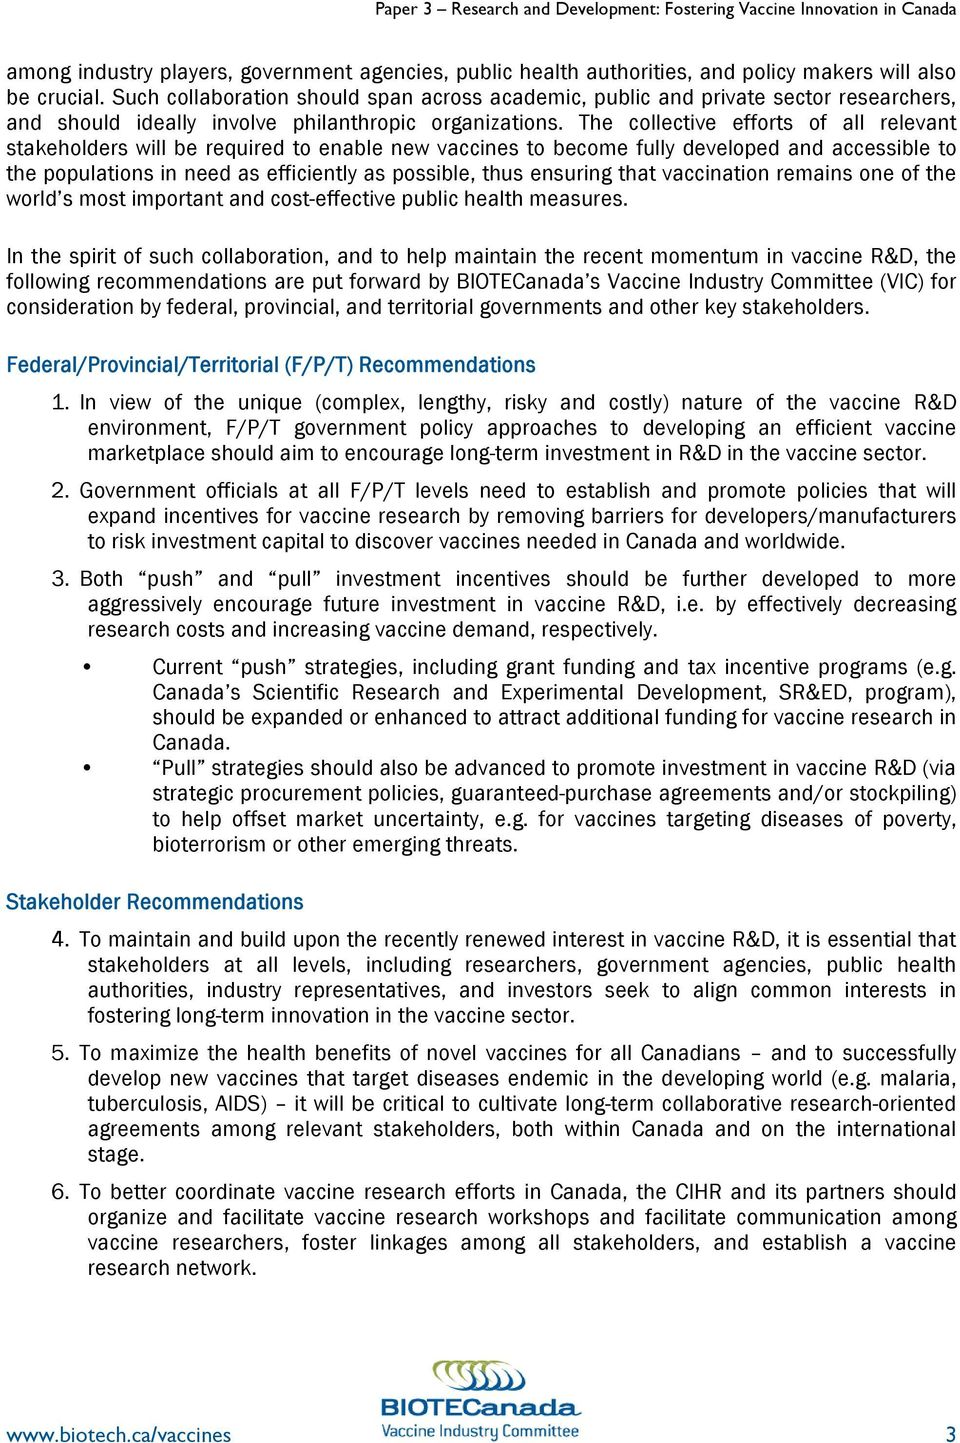 The collective efforts of all relevant stakeholders will be required to enable new vaccines to become fully developed and accessible to the populations in need as efficiently as possible, thus